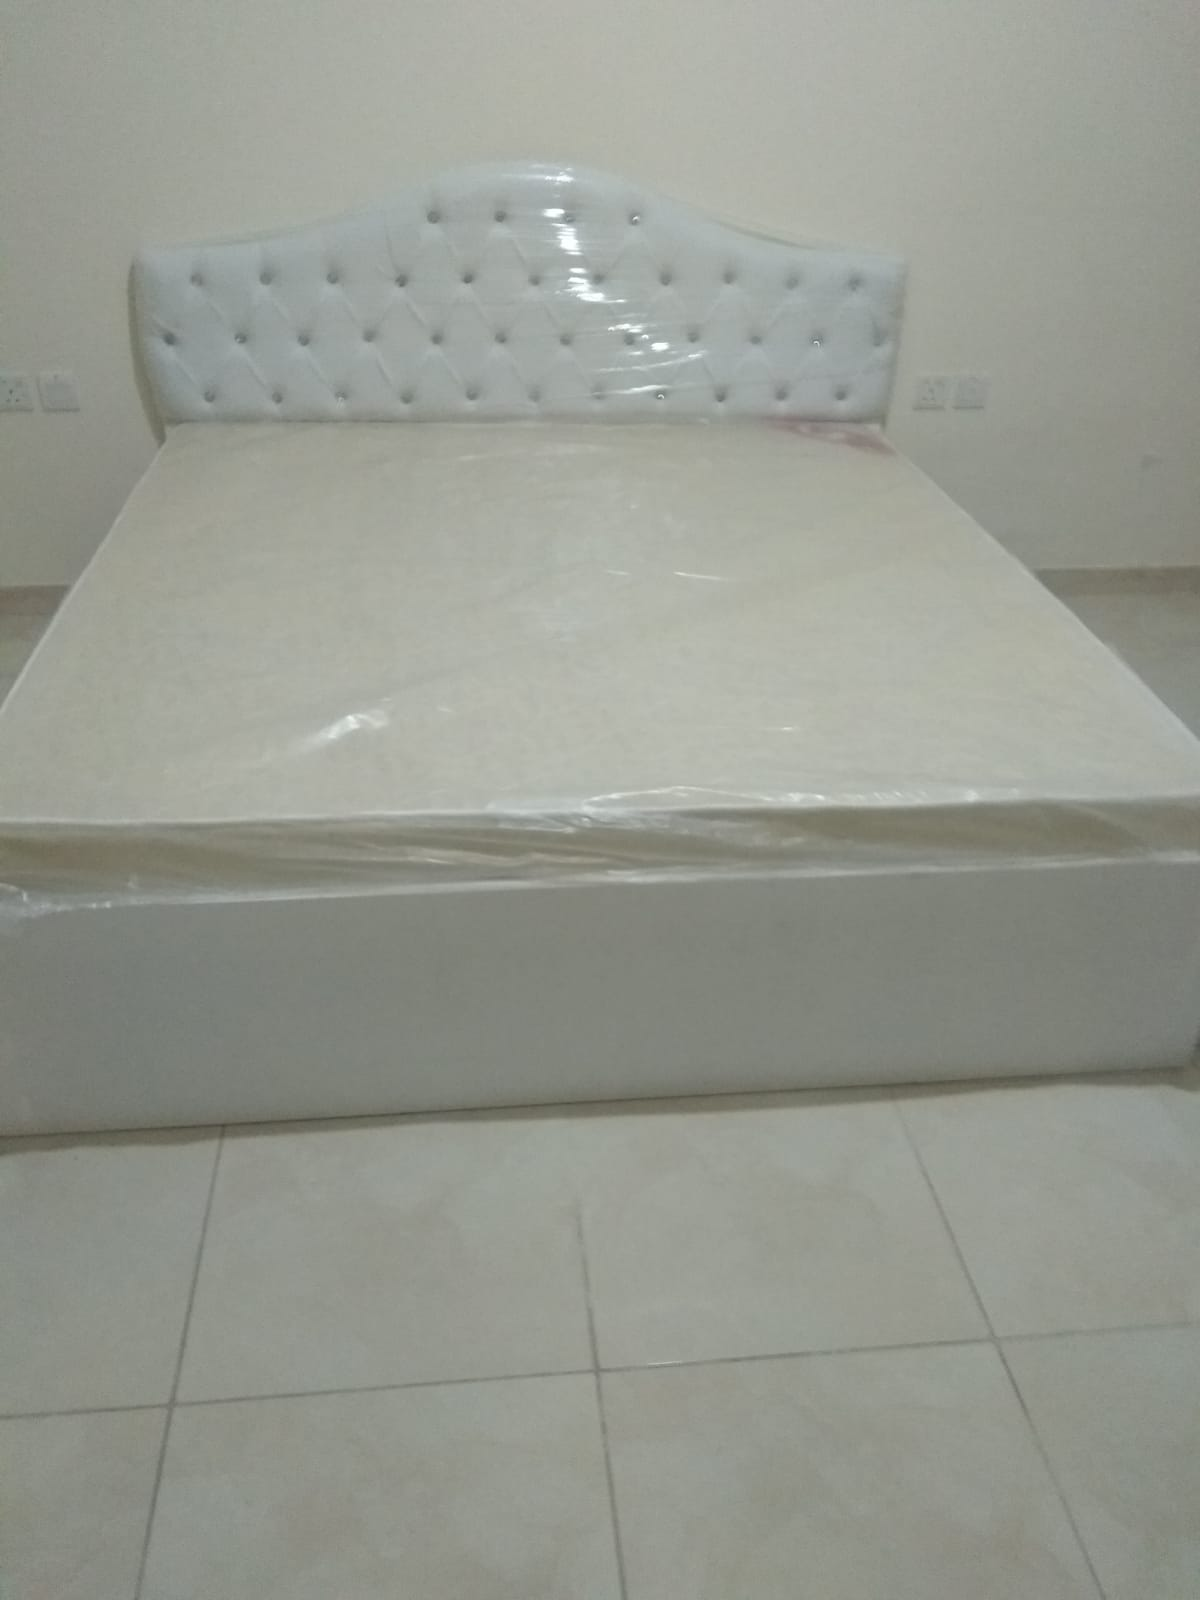 We Sale All King Of New furniture Contact-50098452